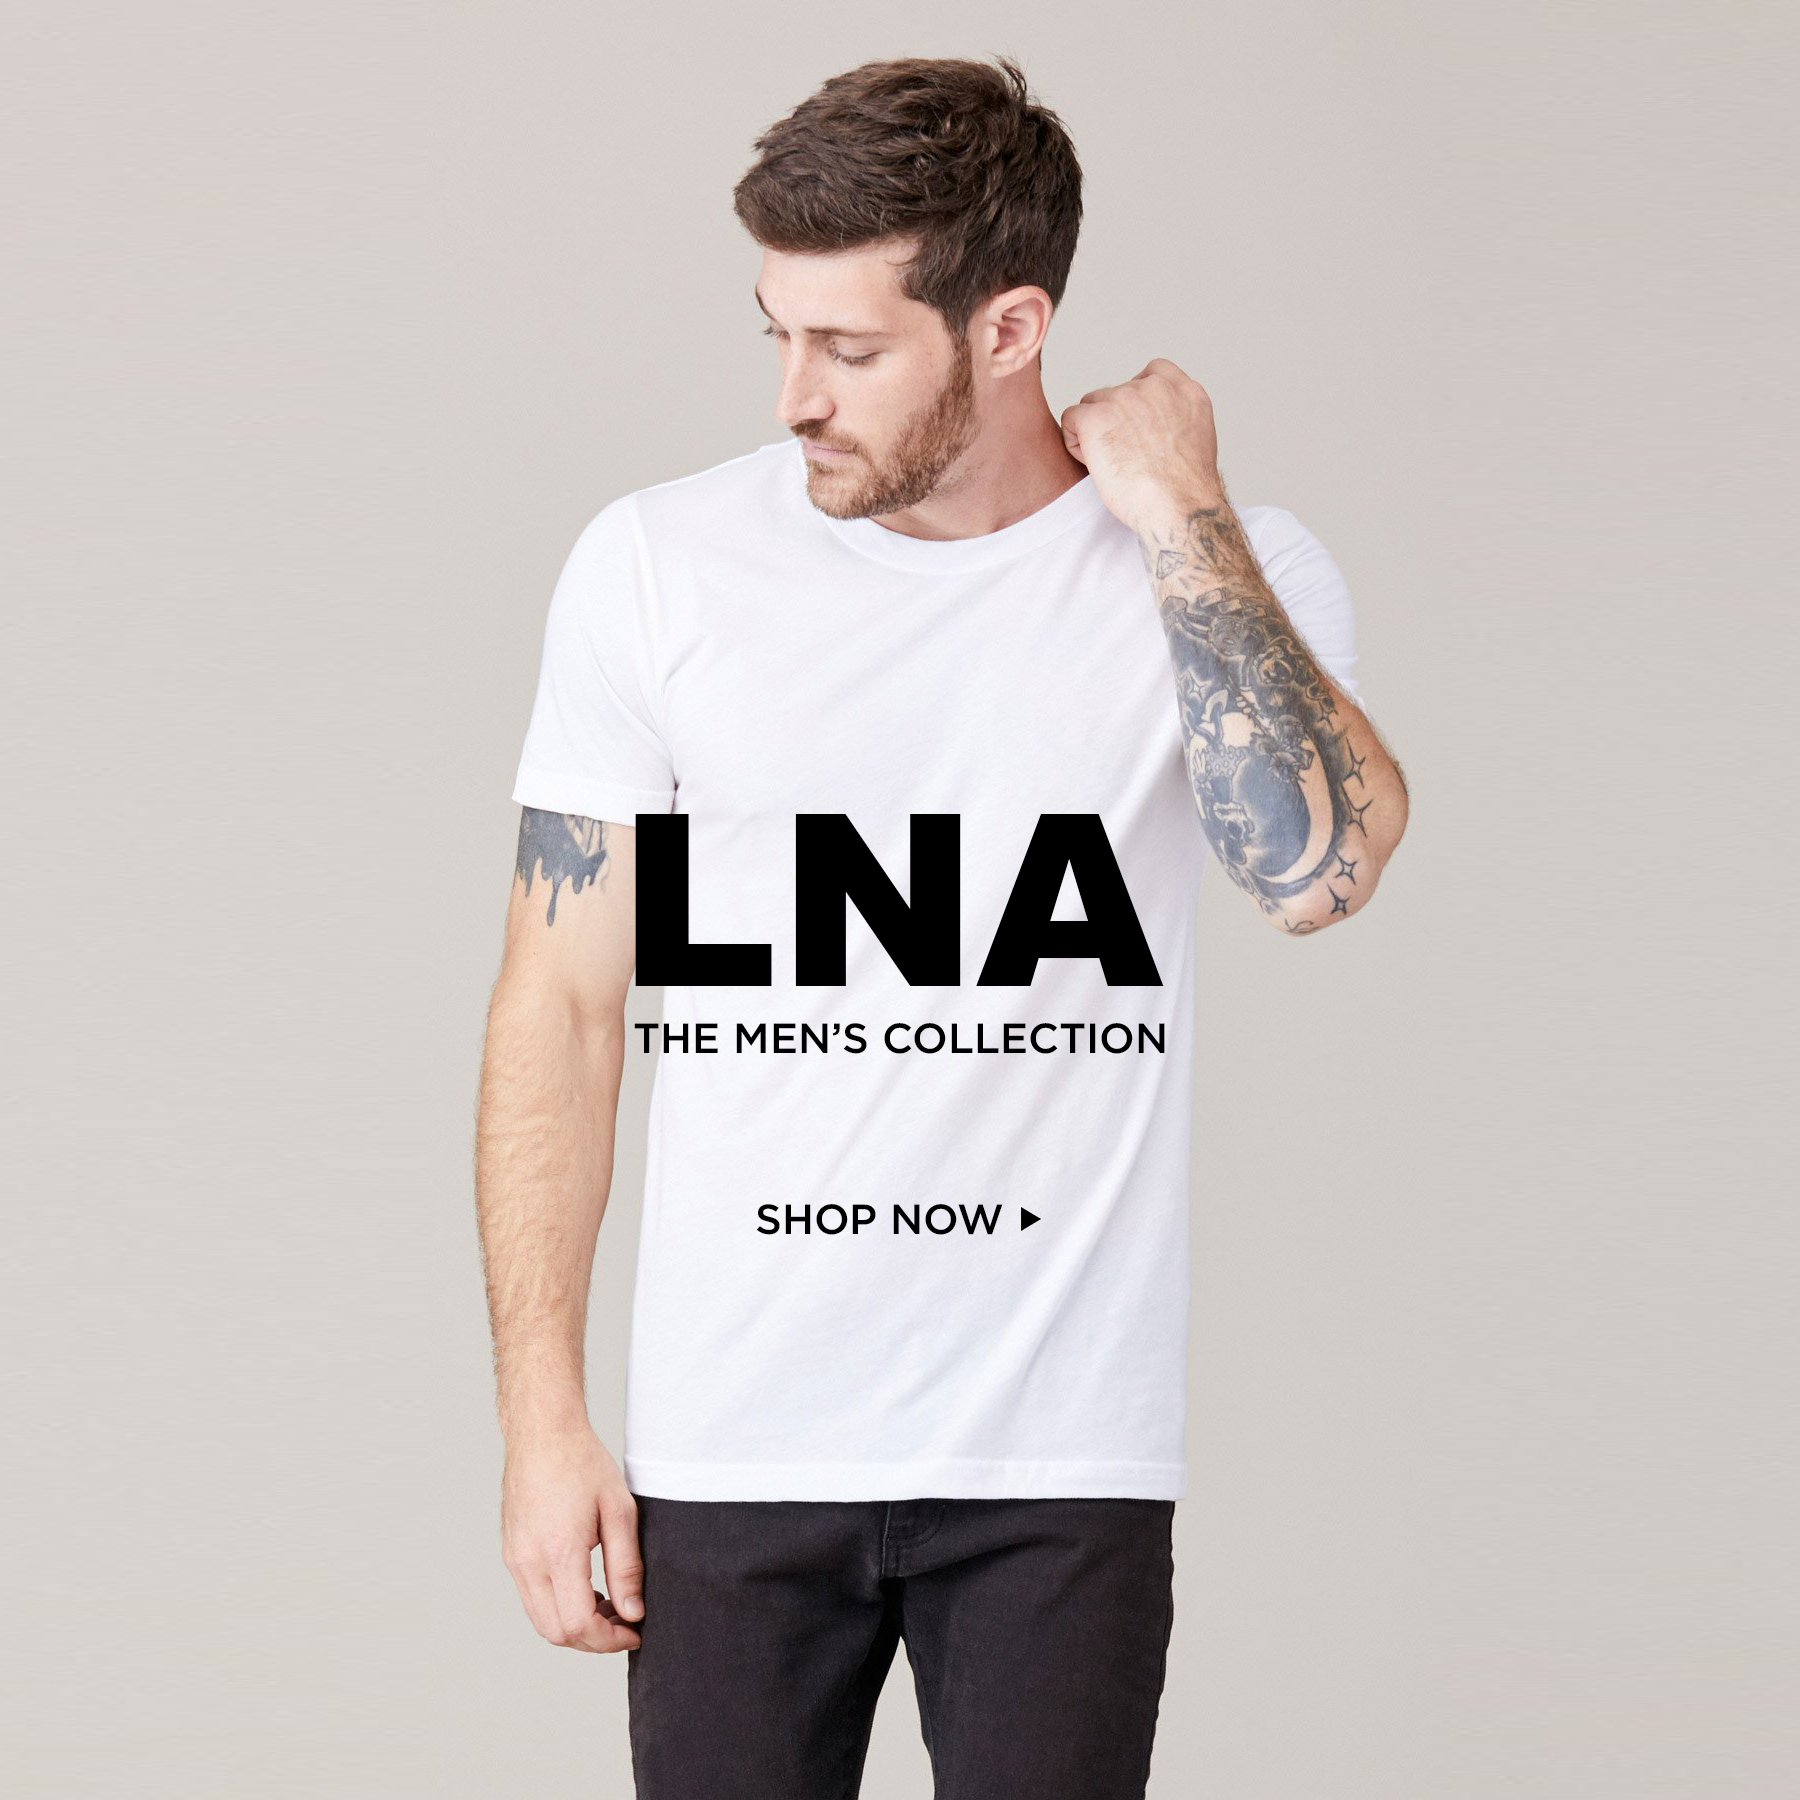 LNA Men's Clothing